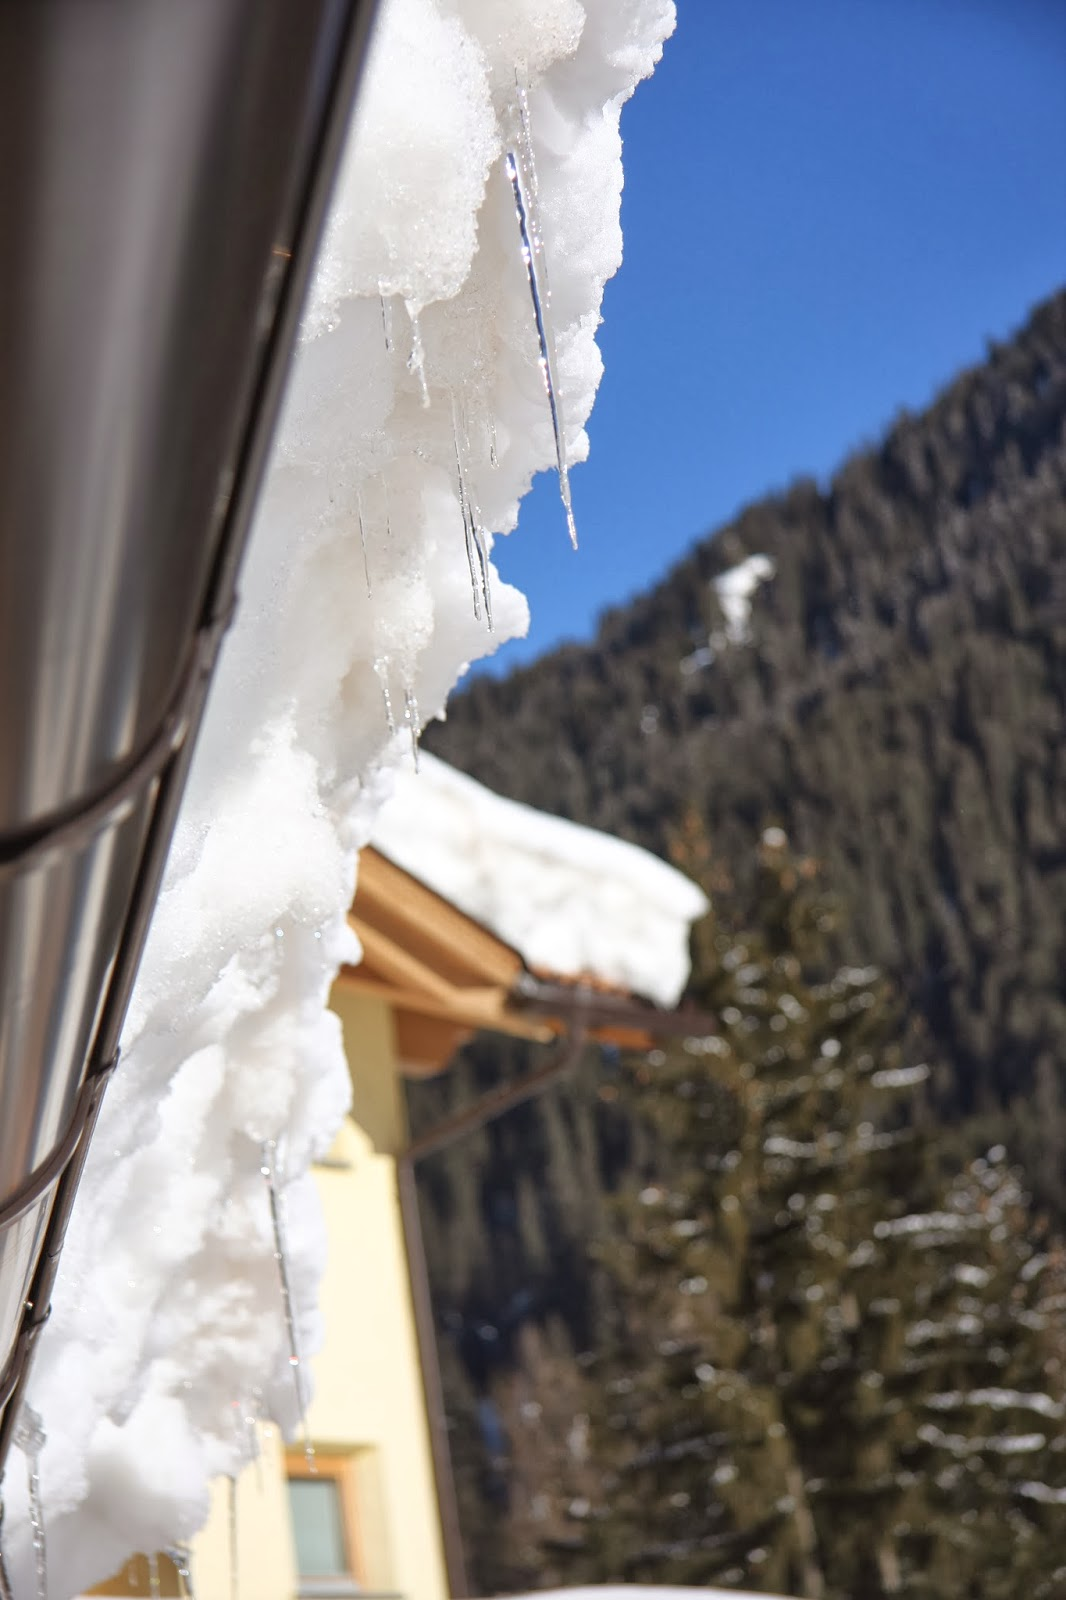 Icicles & Snow Hanging off the Roof